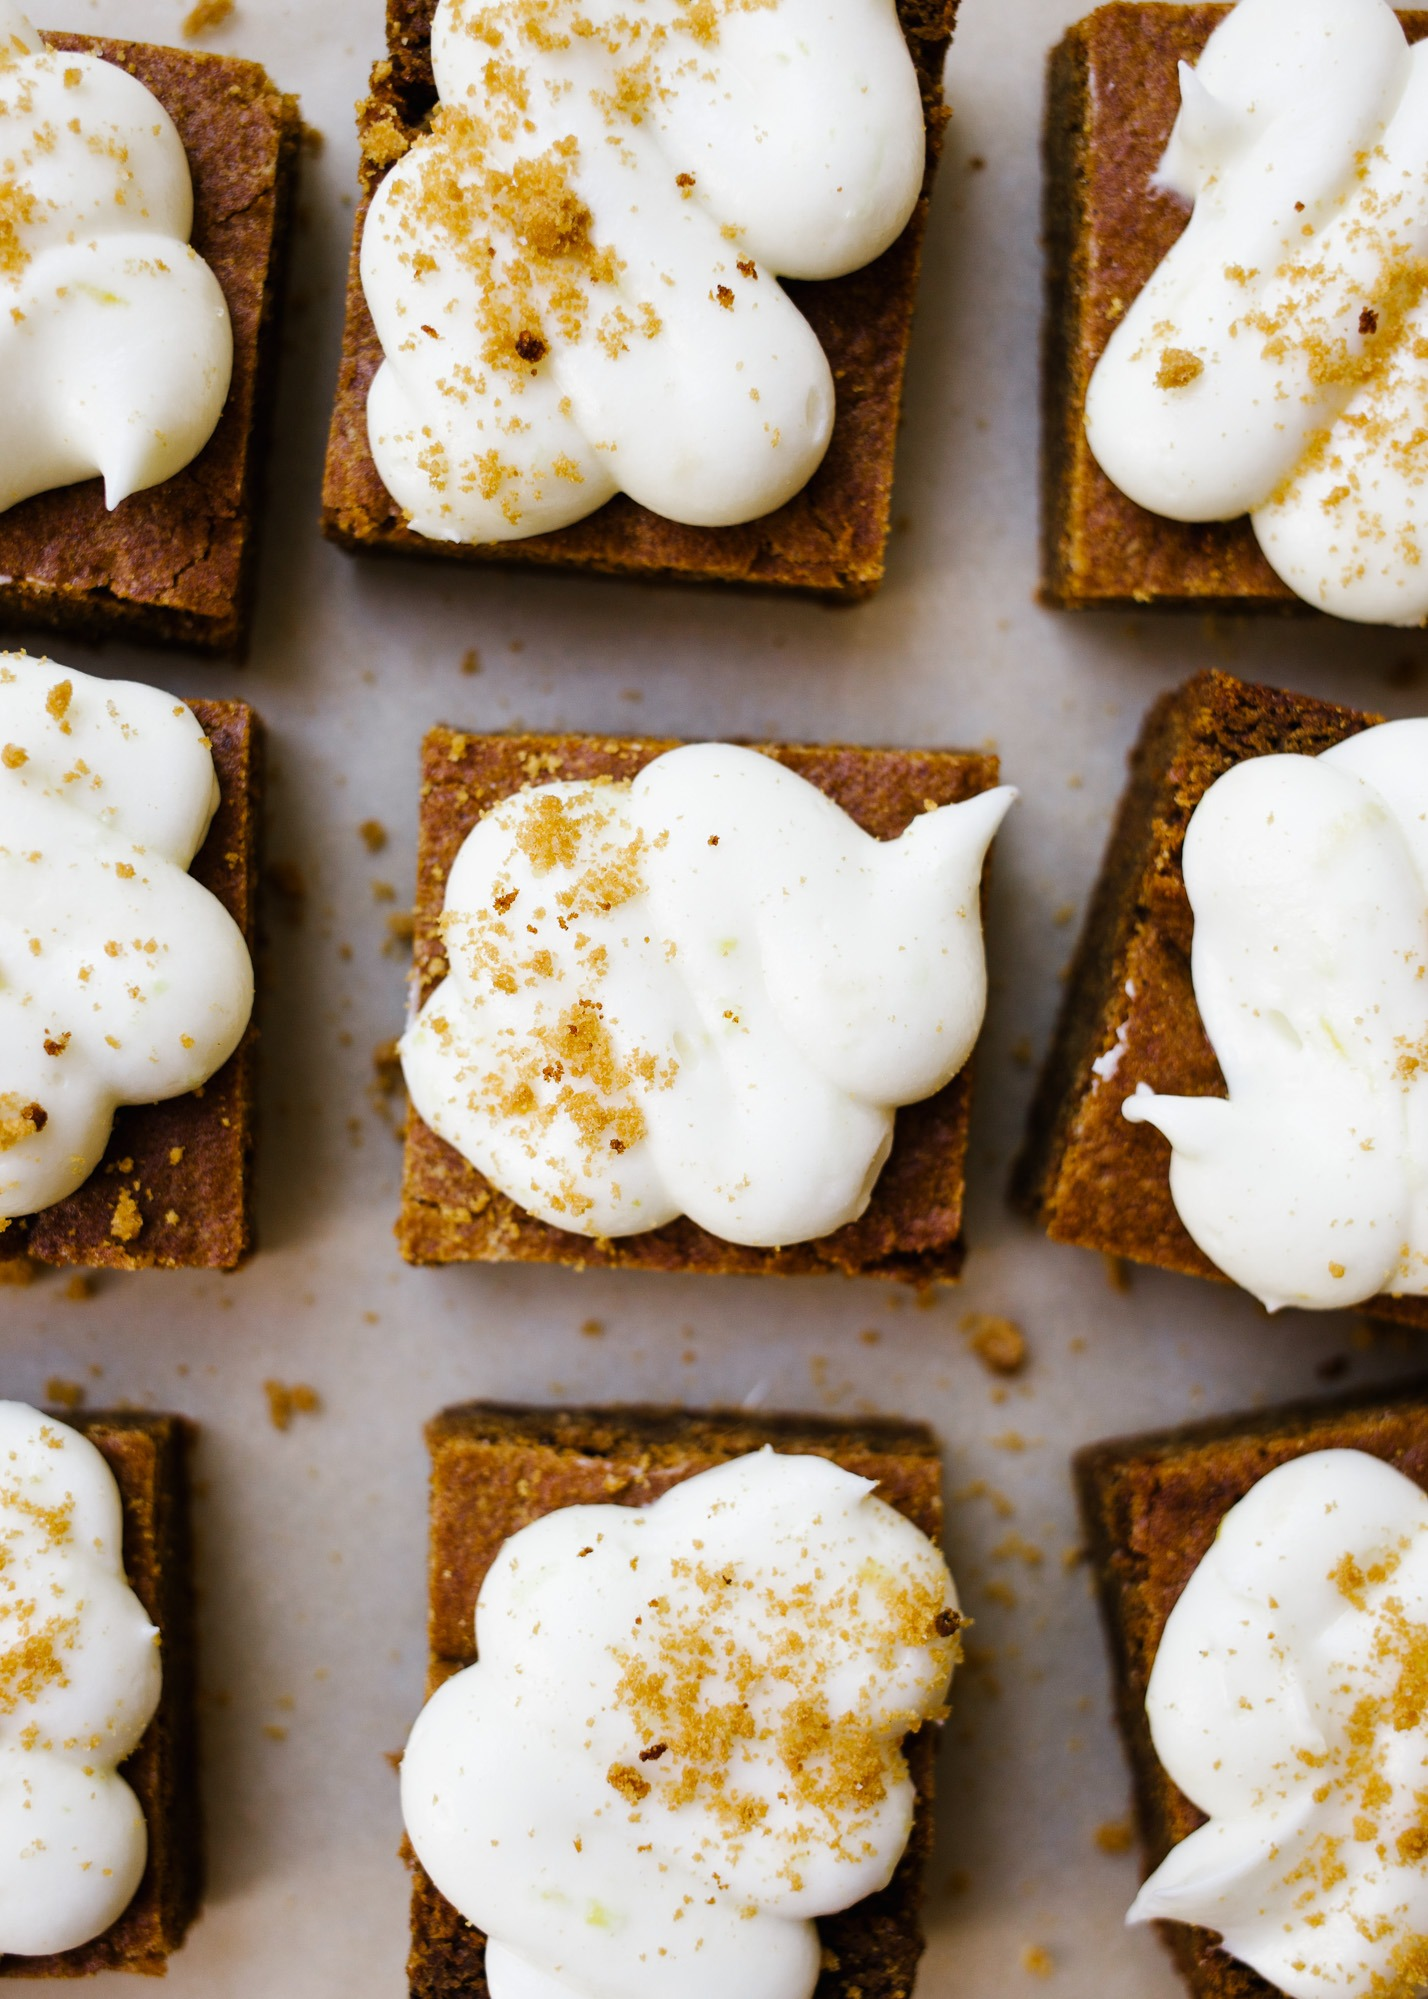 Chewy Gingerbread Lemon Barsrs by Wood and Spoon. These are soft blondie-like bars flavored with ginger and topped with a cream cheese and lemon frosting! These bars and sweetened and chewy, perfect for the holidays! Learn how to make these sweet gingerbread treats on thewoodandspoon.com